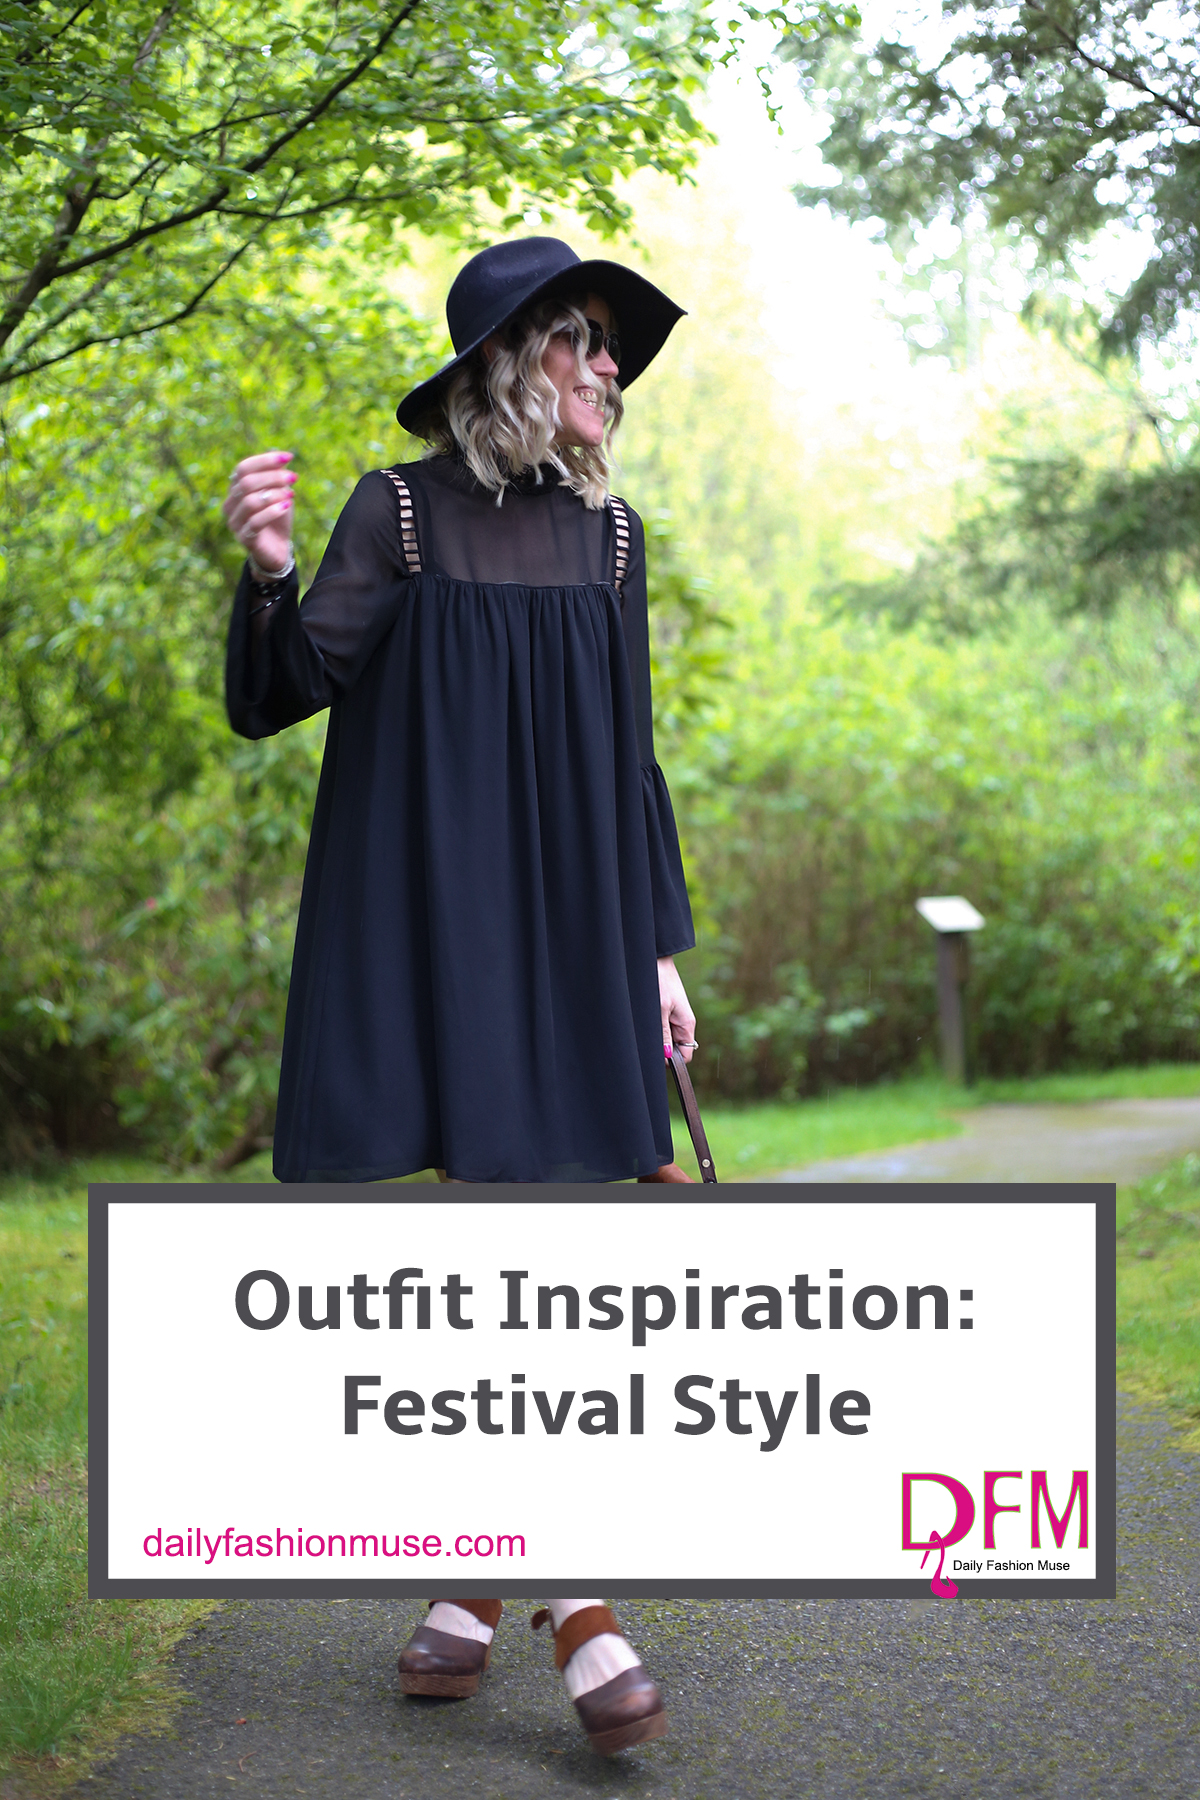 Catch the bohemian festival fashion vibe with a swing dress and clogs. Got to remember to top it all off with your floppy fedora to protect yourself from the sun.Click through to see more or repin for later inspiration.